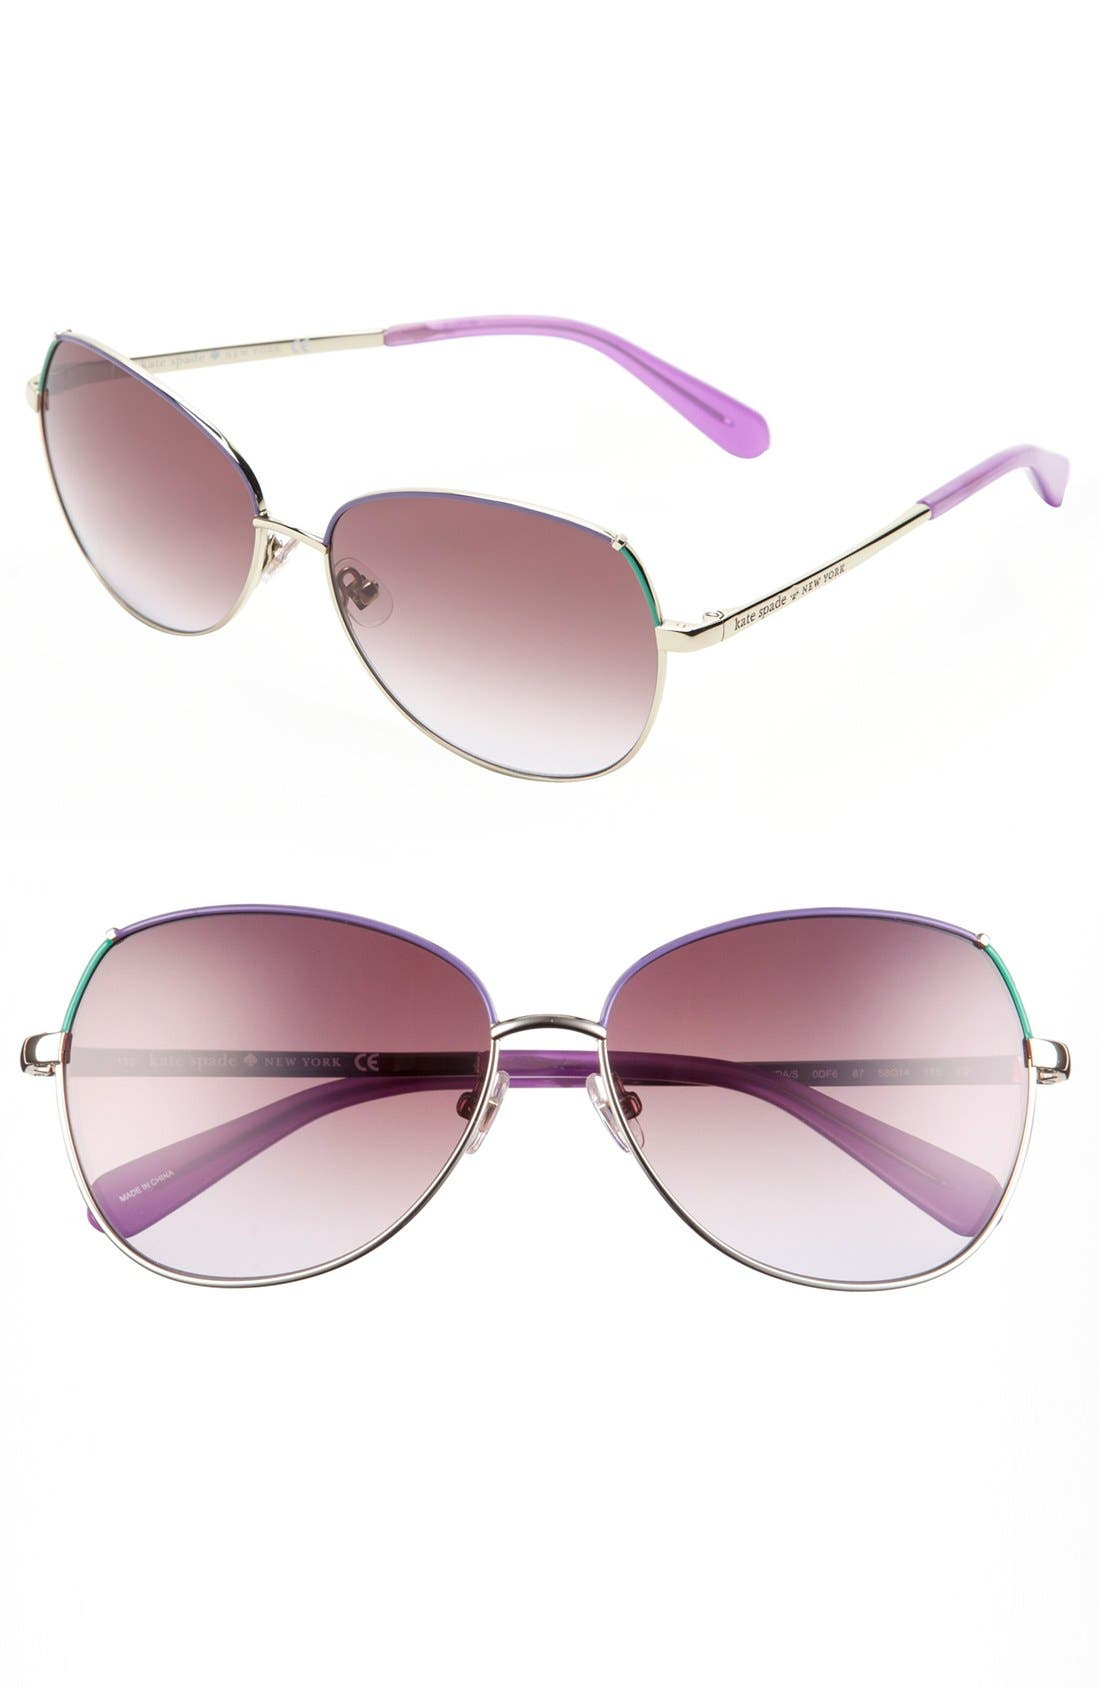 Alternate Image 1 Selected - kate spade new york 'candis' 58mm sunglasses